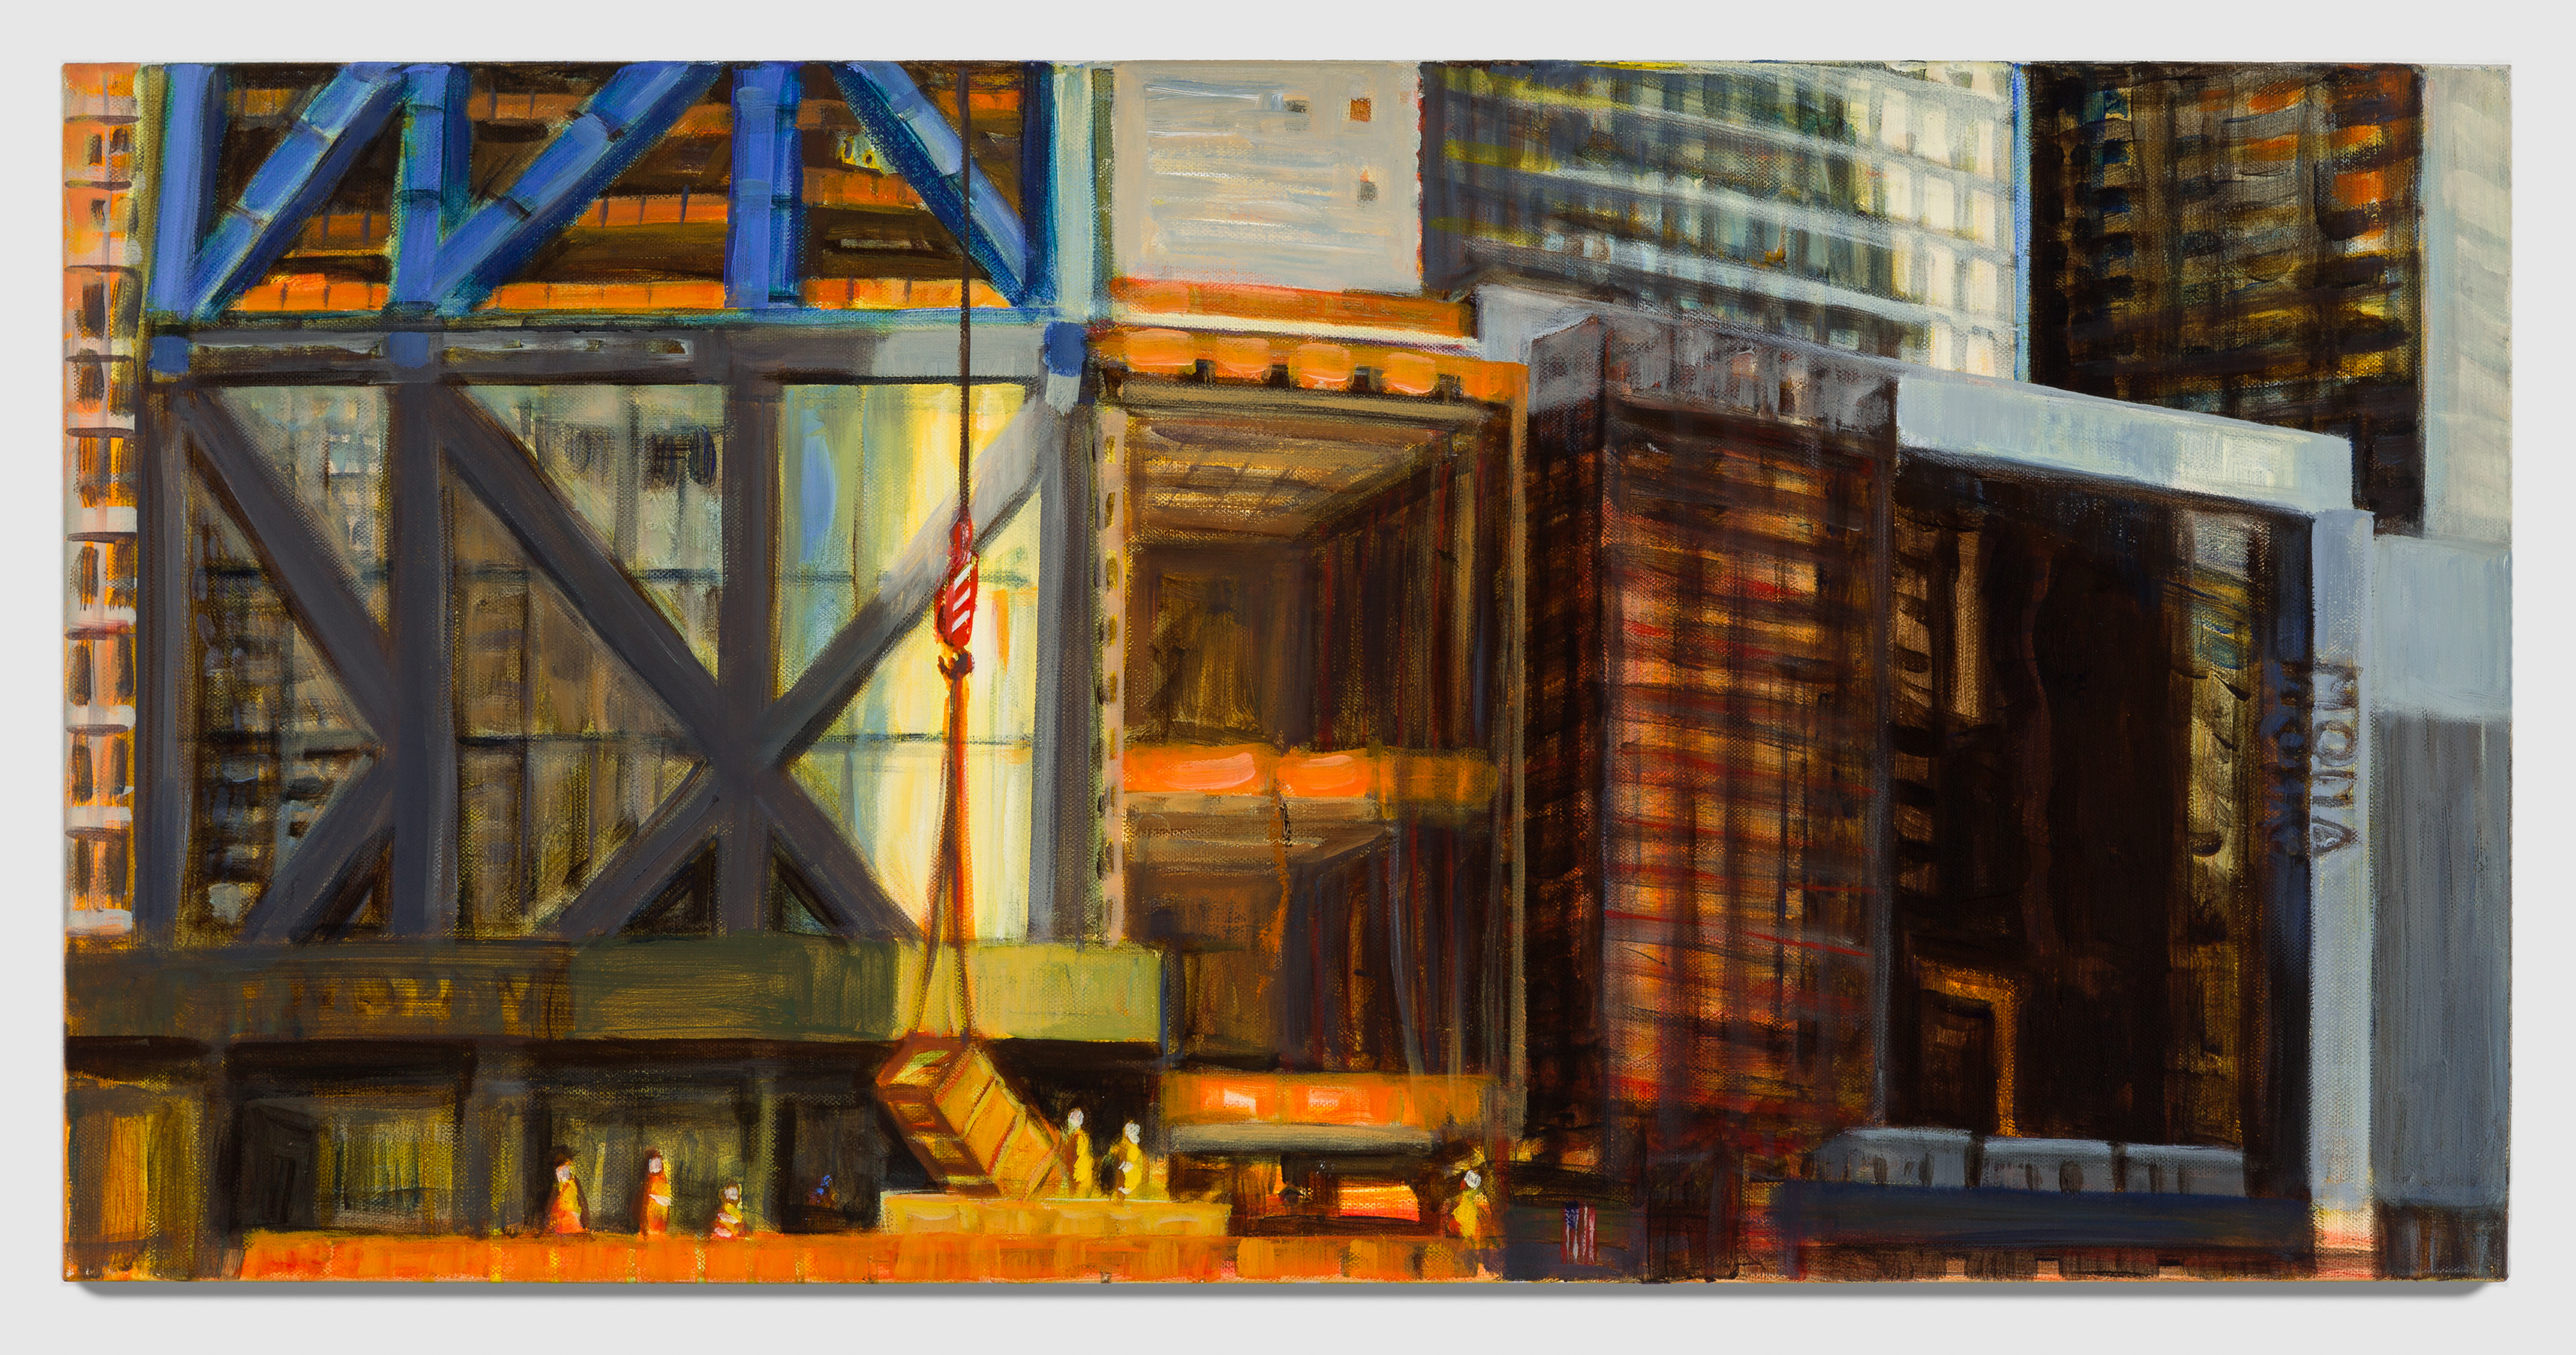 View Image Details Morning Light, West 53rd Street, 2017